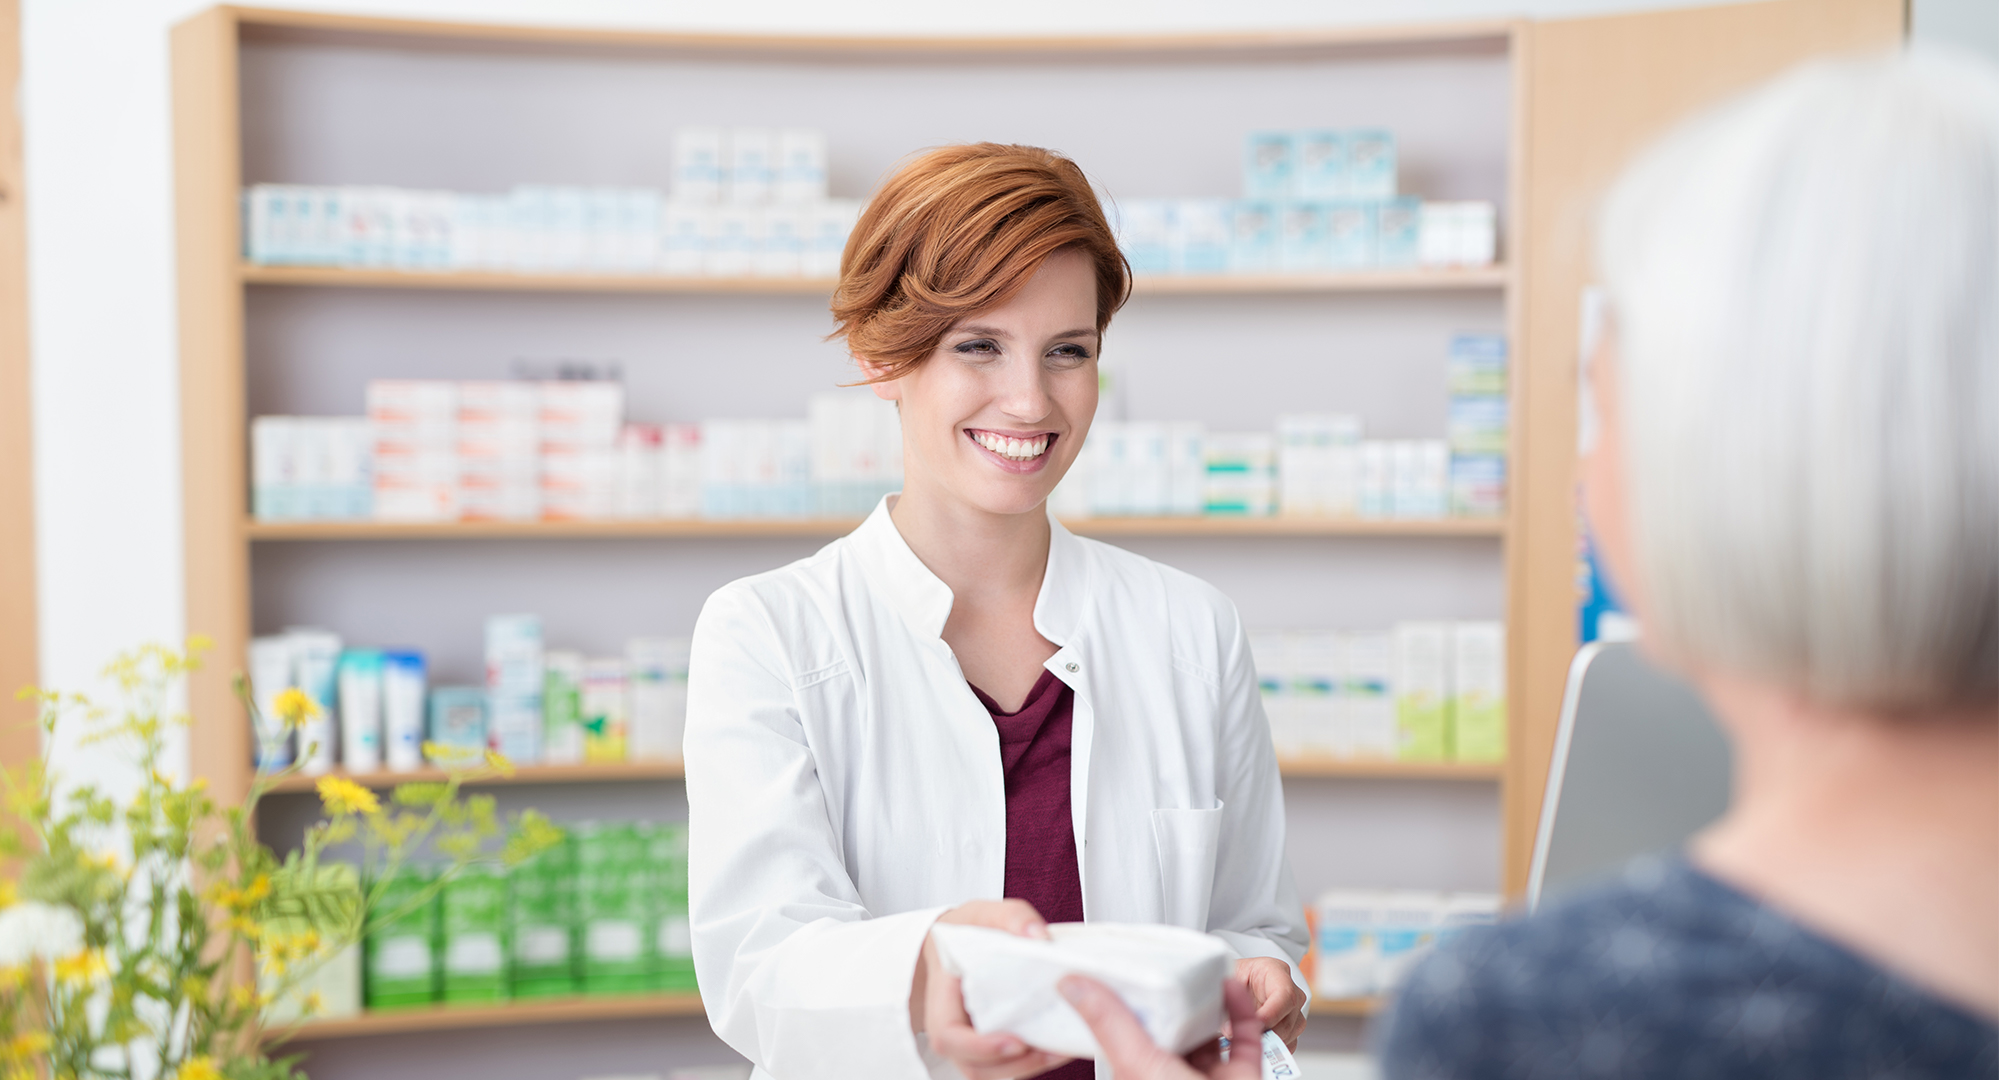 9 Types of Things You Can Ask Your Pharmacist